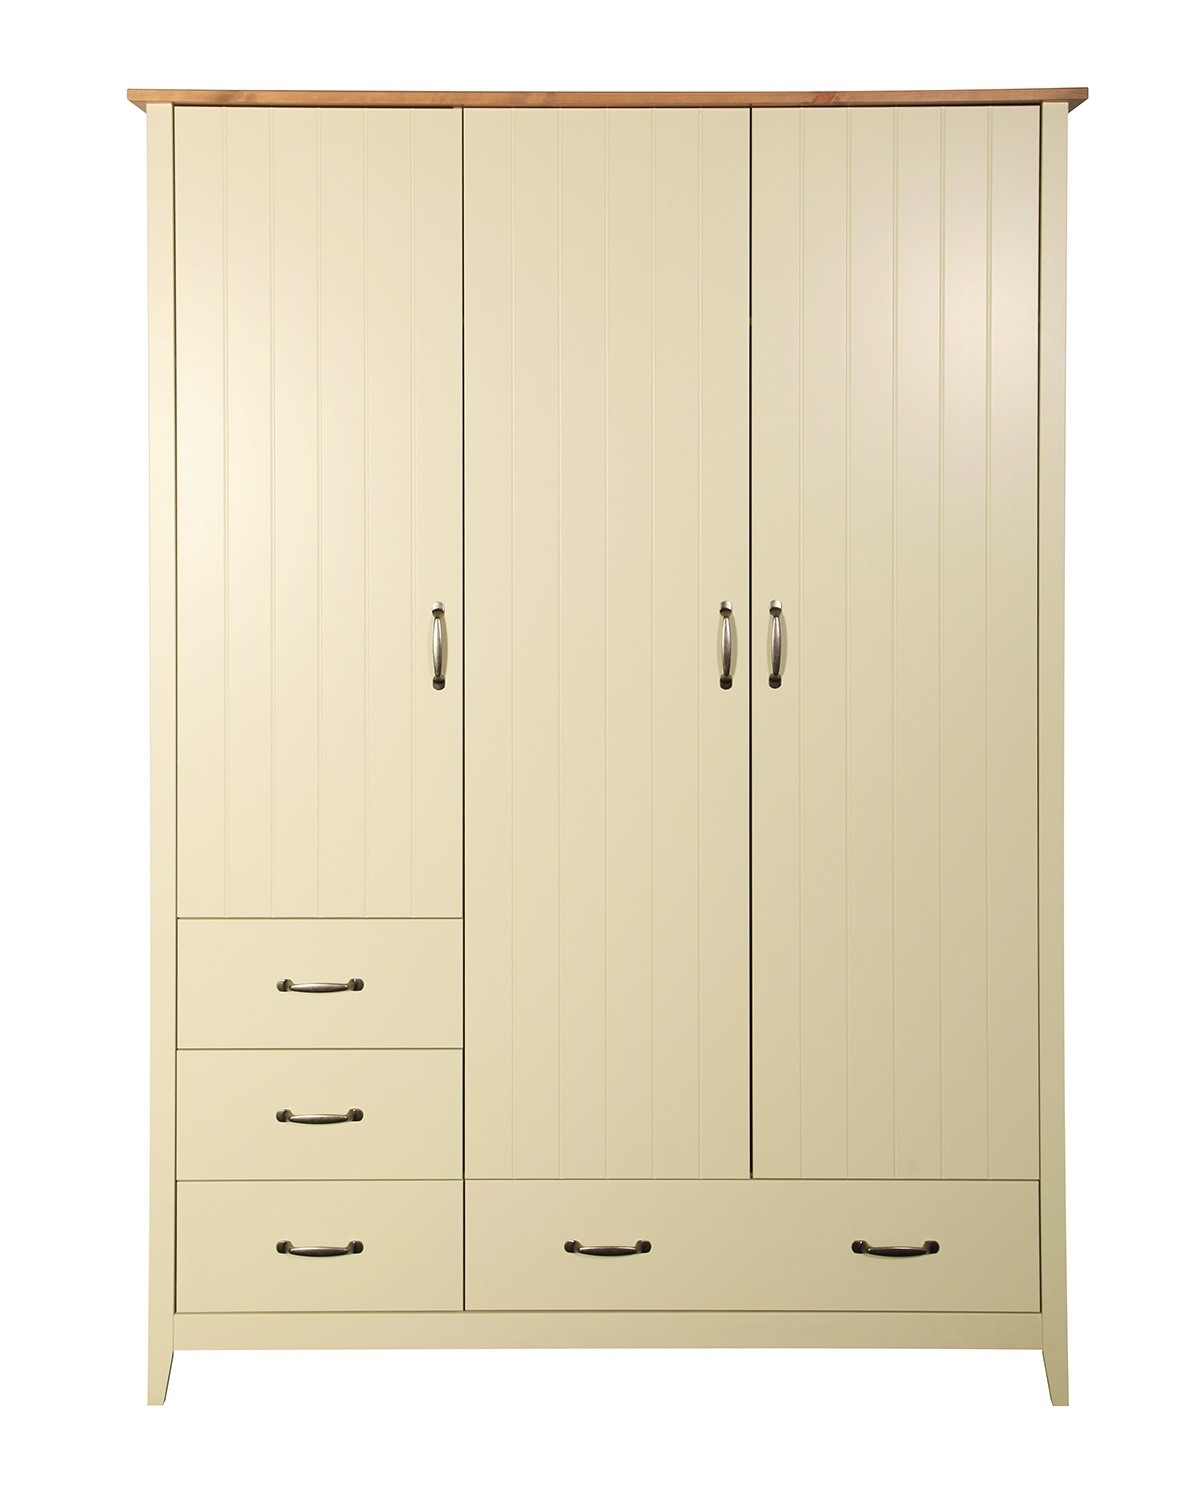 Cheap 3 Door Wardrobes Within Well Liked Norfolk 3 Door Wardrobe Cream From The Original Factory Shop (View 2 of 15)